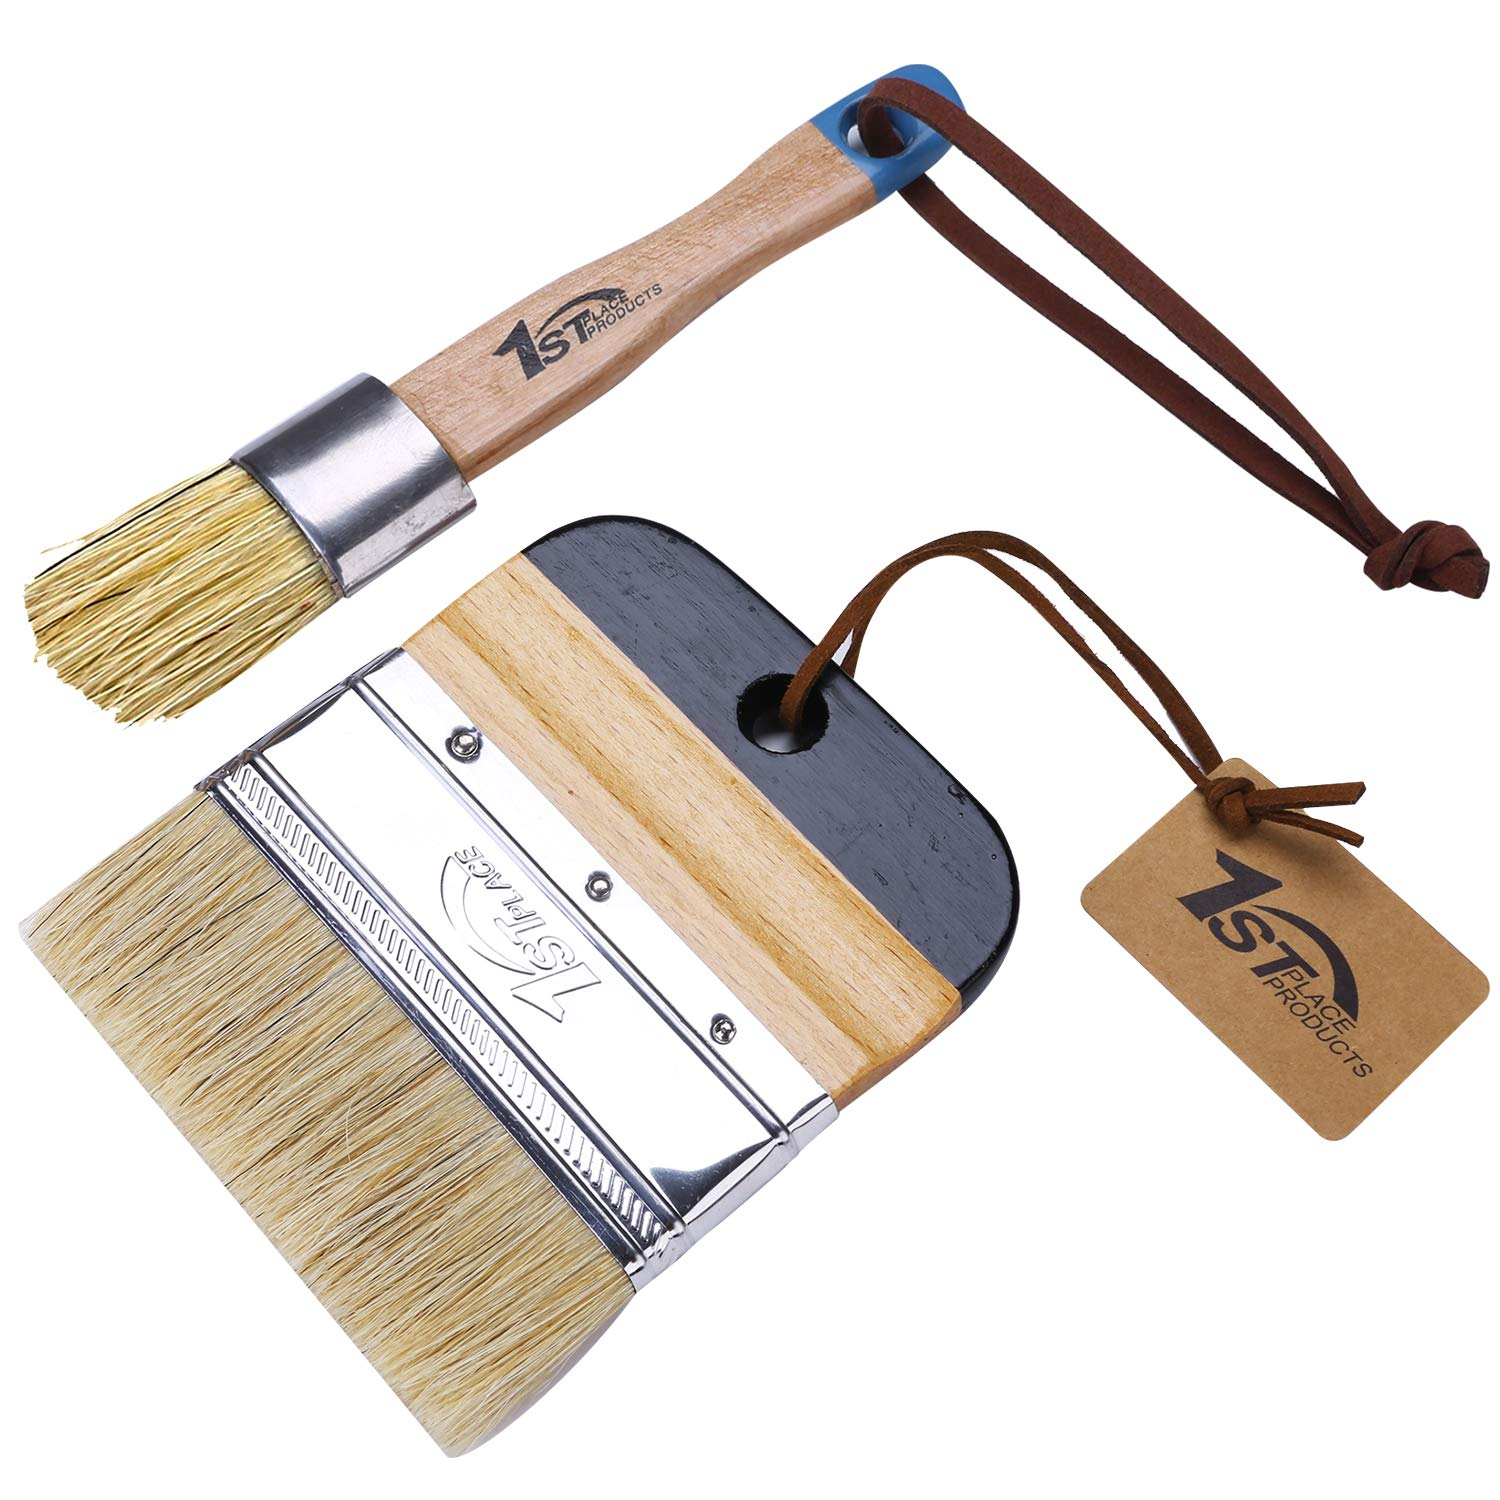 1st Place Products Chalk & Wax Flat Brush Set - Pure Natural Bristles - Excellent for Large & Detailed Surfaces - Painting, Waxing, DIY, Home Decor by 1st Place Products